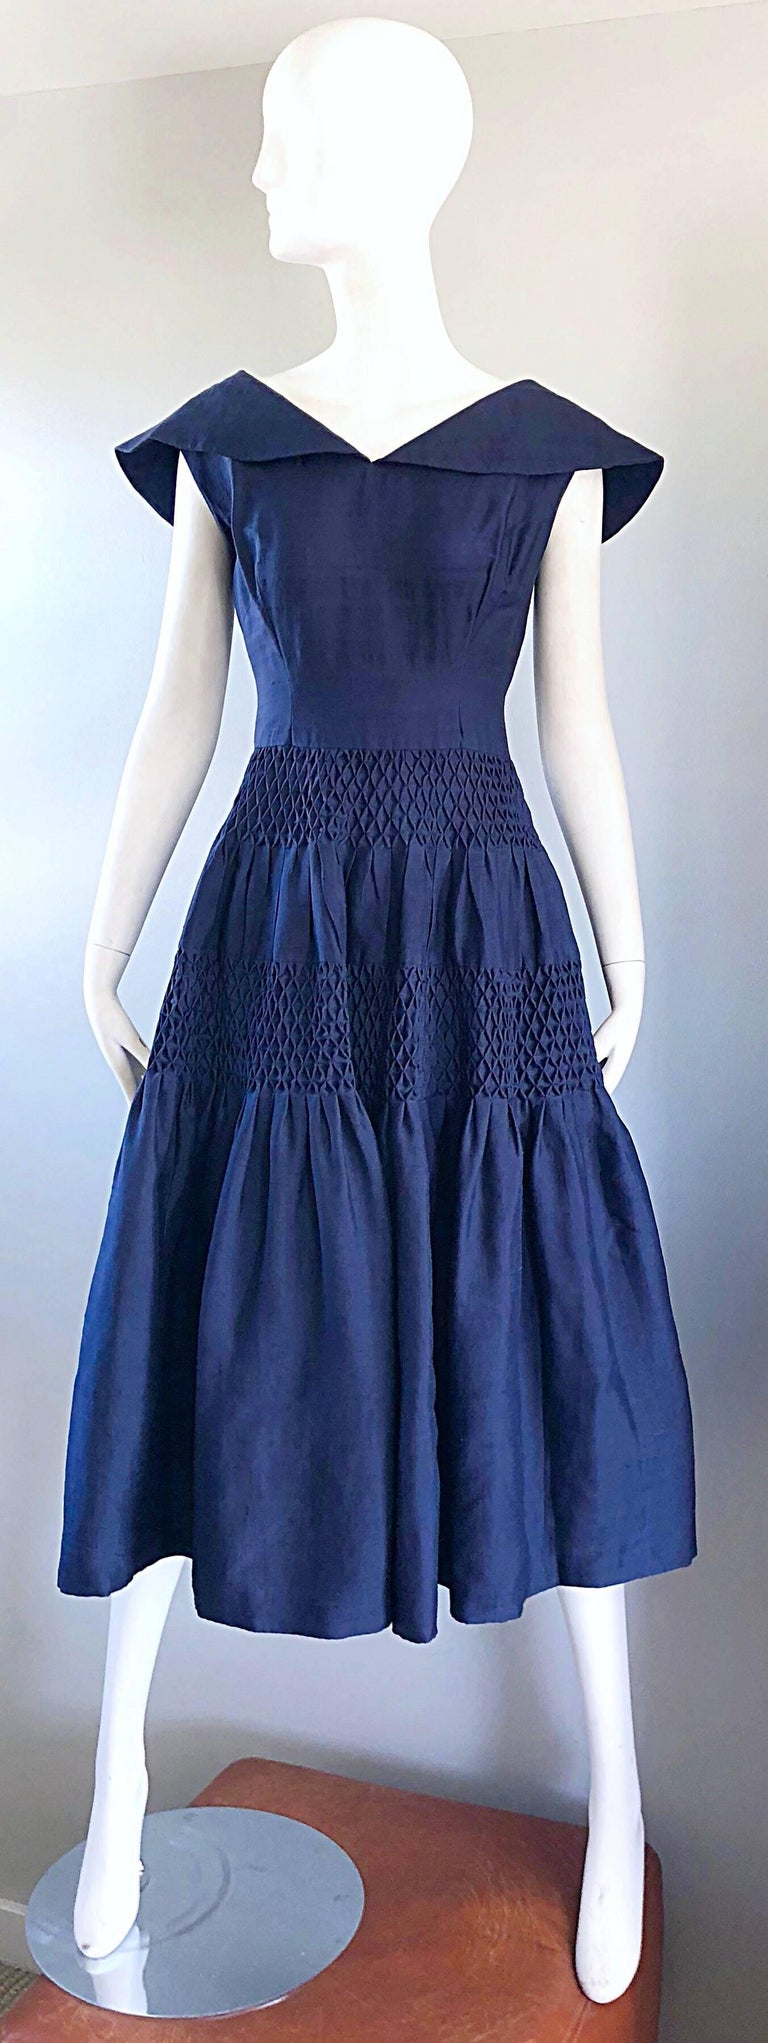 Gorgeous 1950s demi couture navy blue silk shantung nautical fit n' flare dress! Masterfully designed, with a very heavy attention to detail. Fitted bodice, with a forgiving and flattering full skirt. Shawl like collar, with ribbon bow detail on the